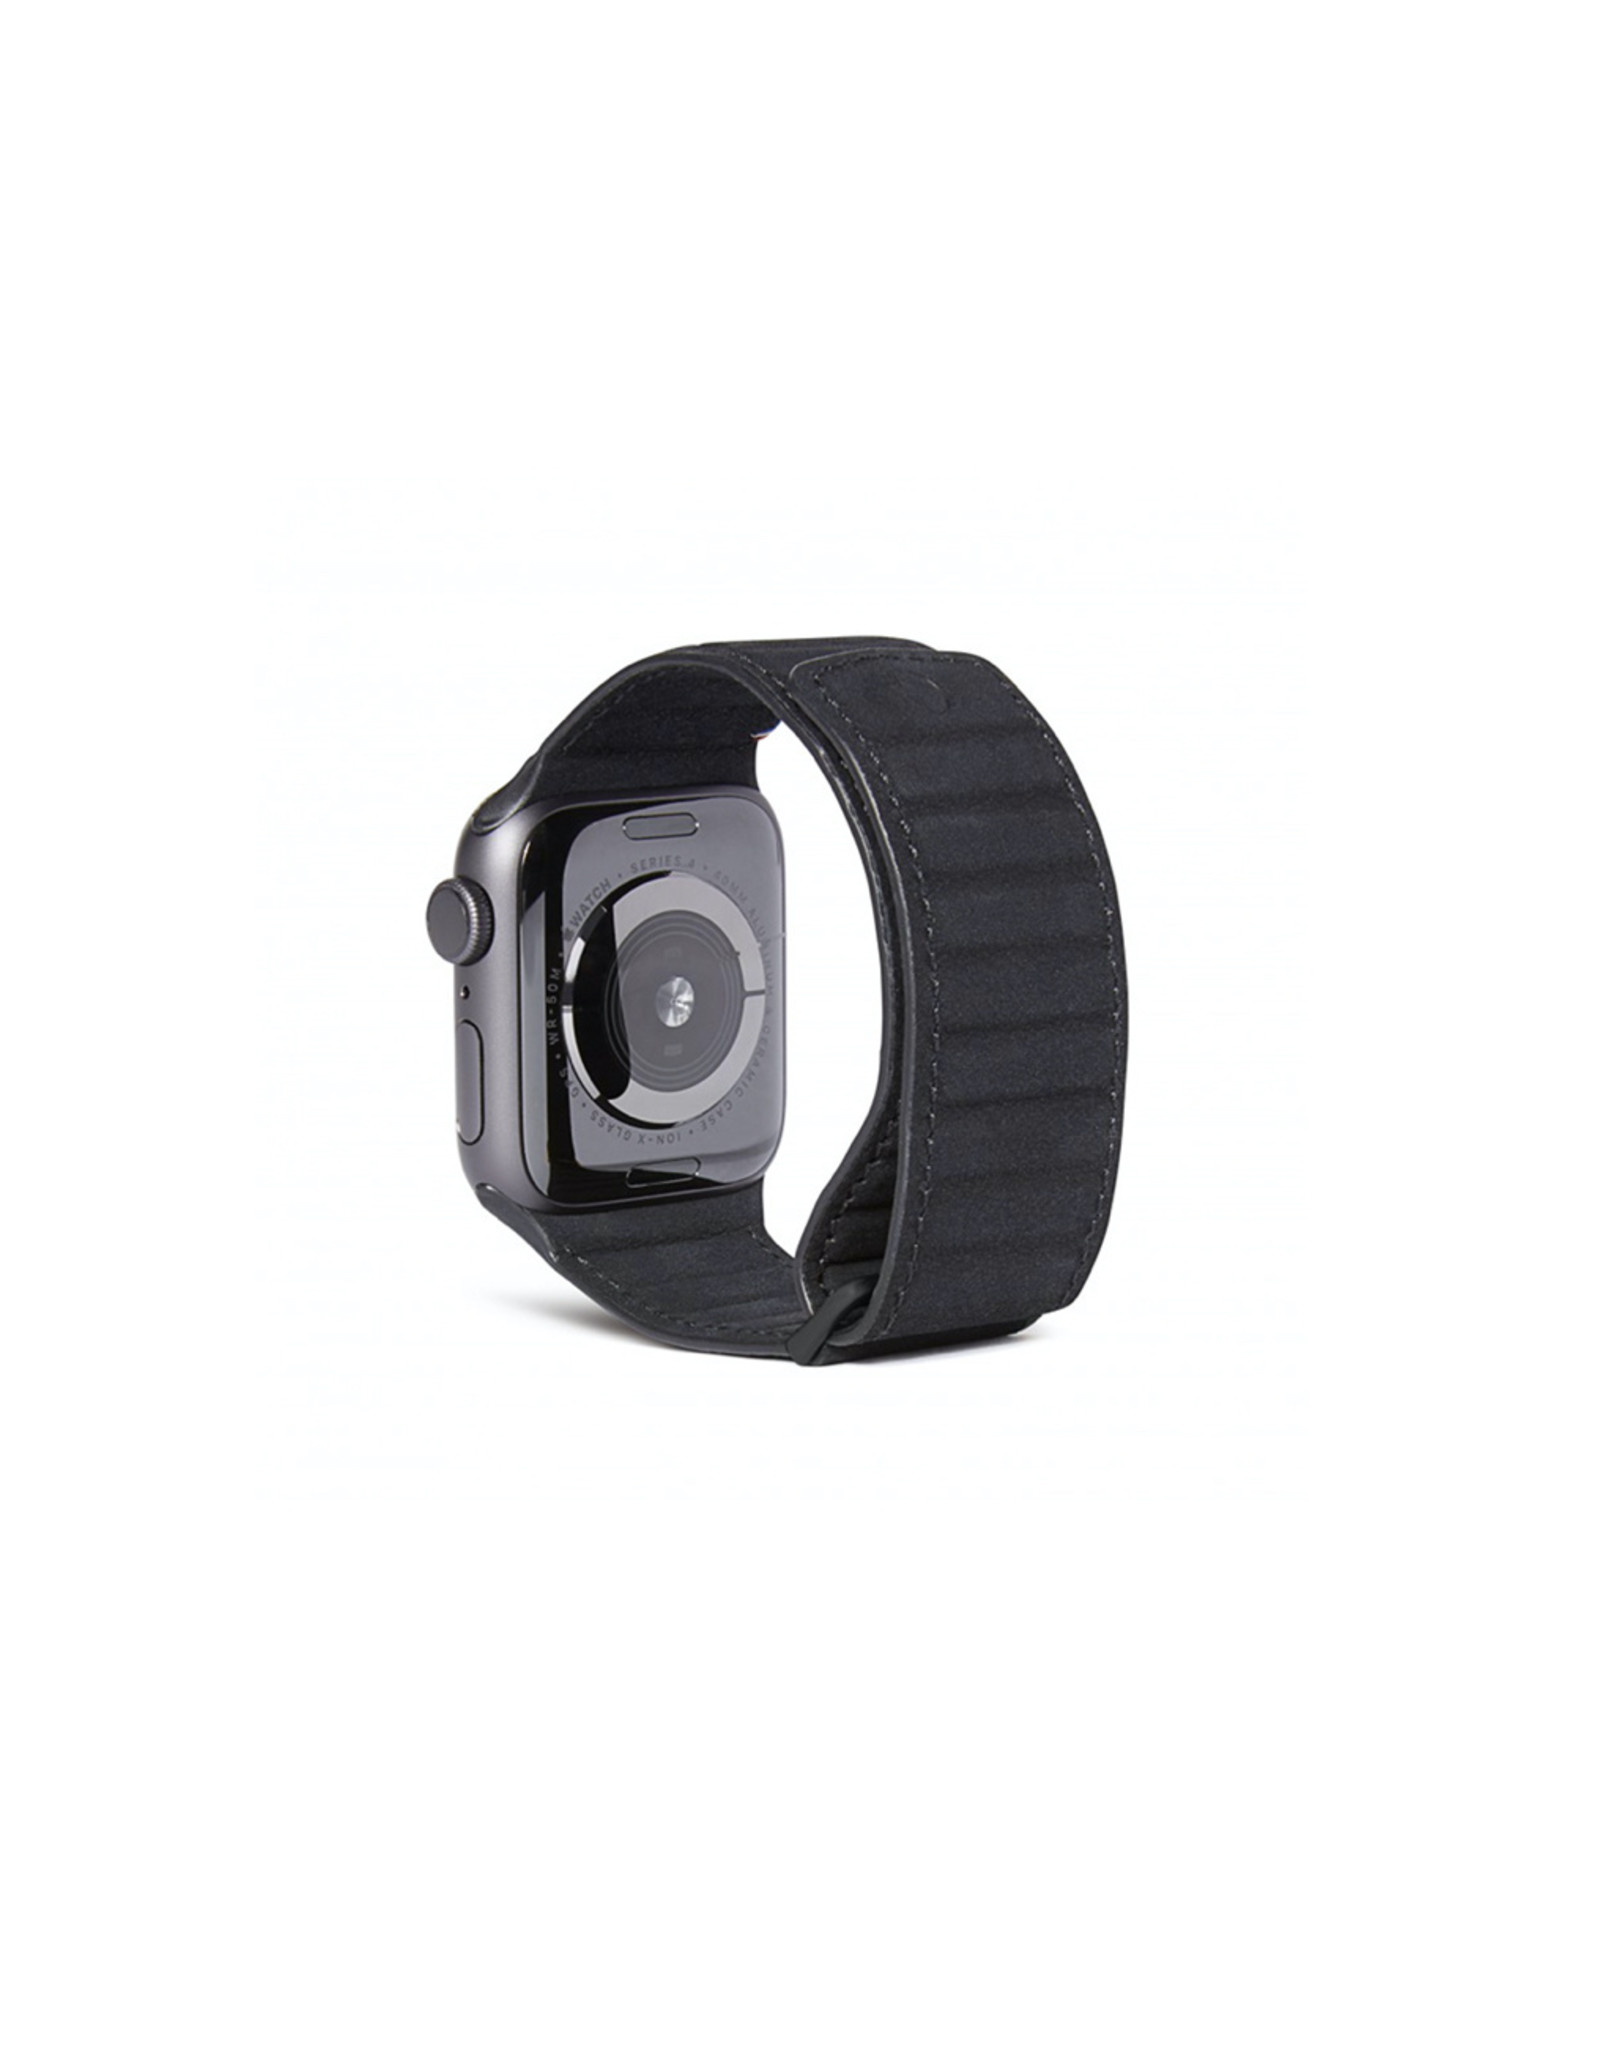 Decoded Leather Magnetic Traction Strap Series 5 / 4 (40mm) / 3 / 2 / 1 (38mm) DC-D9AWS40TS1BK